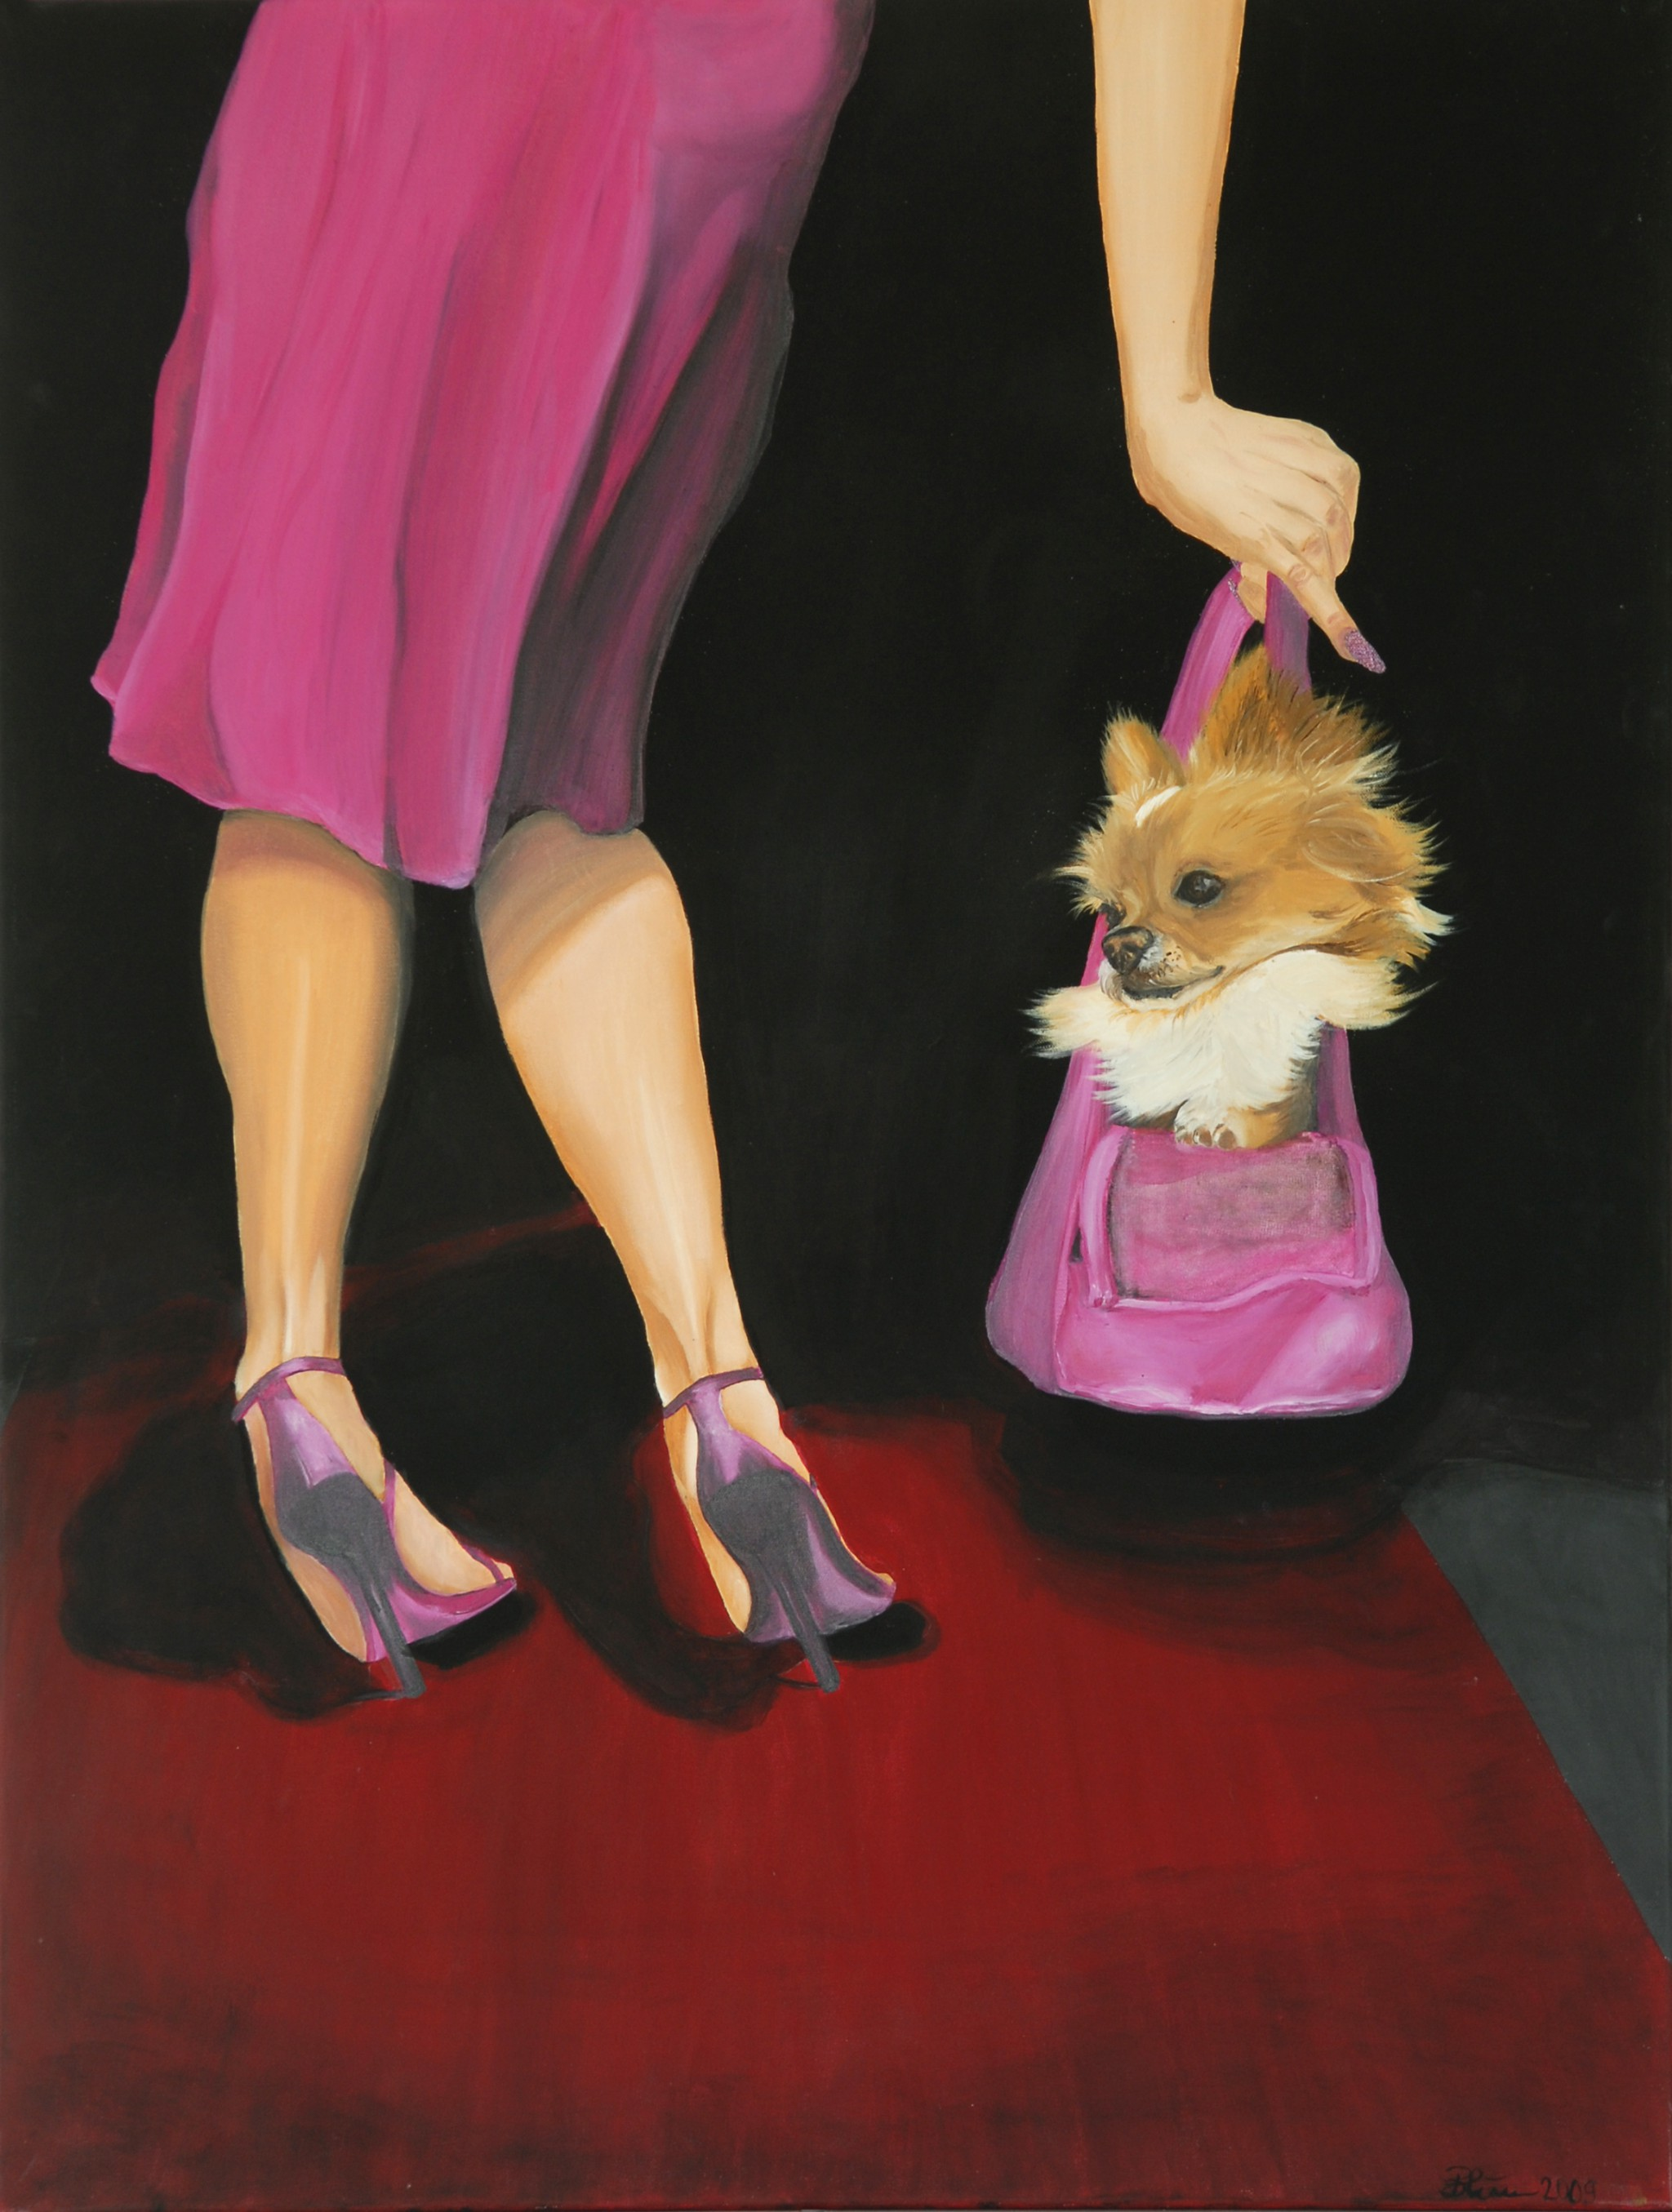 Dog on Red Carpet, 2009, Öl/Acryl/Leinwand, 100 x 80 cm